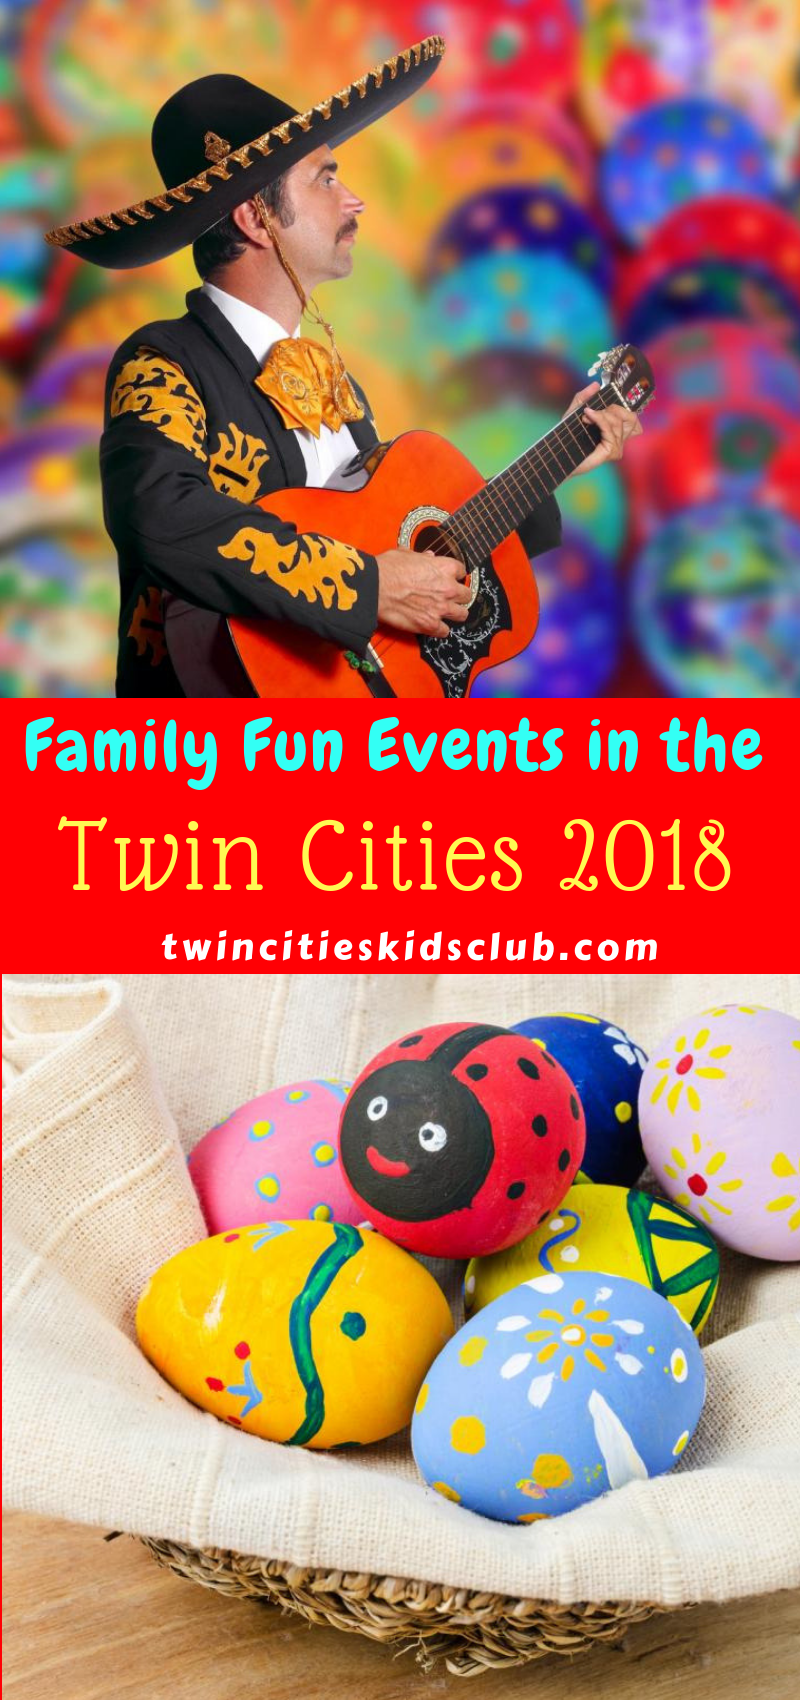 Twin Cities Kids Club Blogs Family Fun Events In The Twin